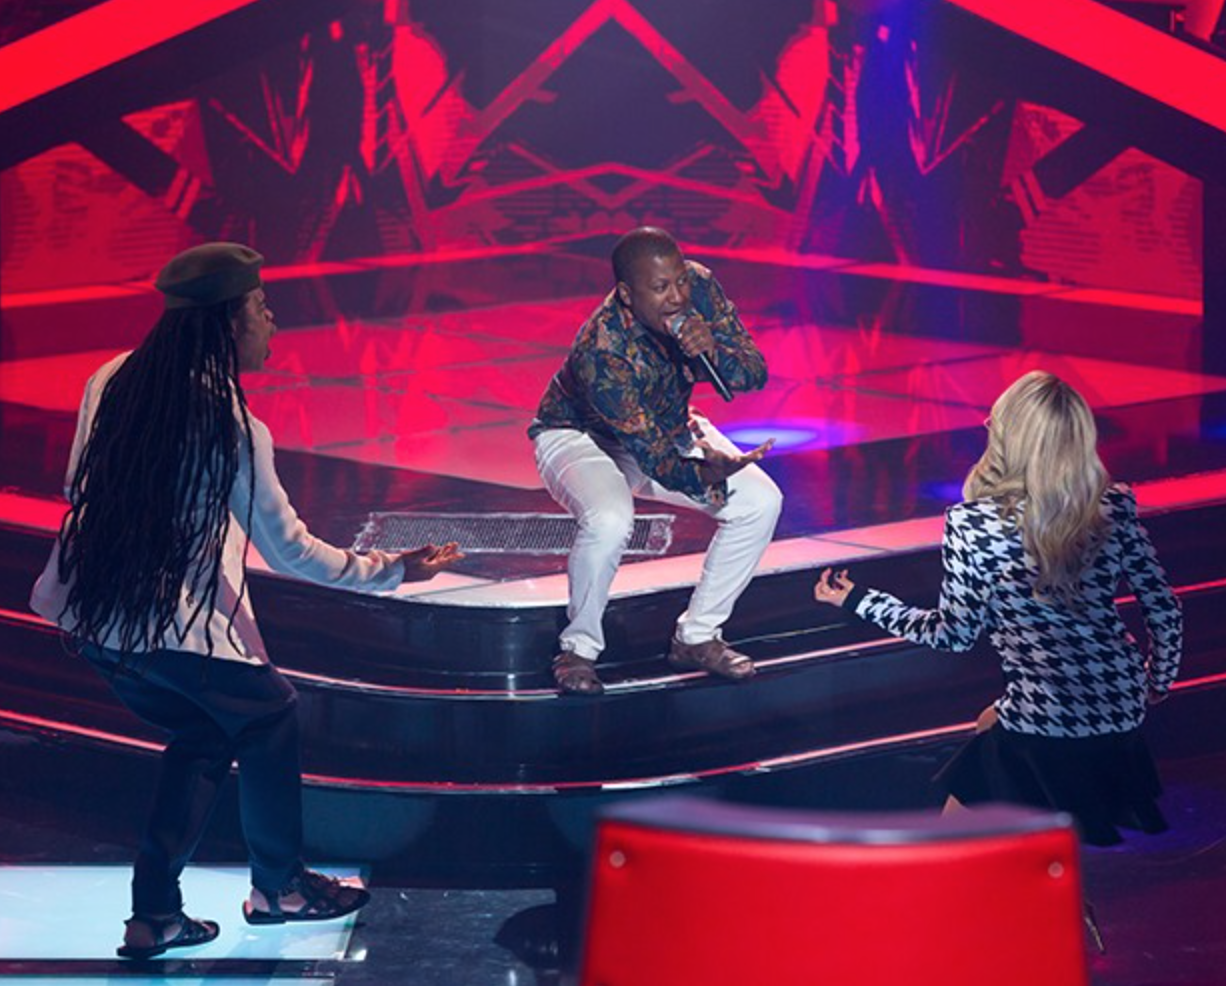 The Voice judges to not look at the contestants while they perform. This image was taken in July 2016.